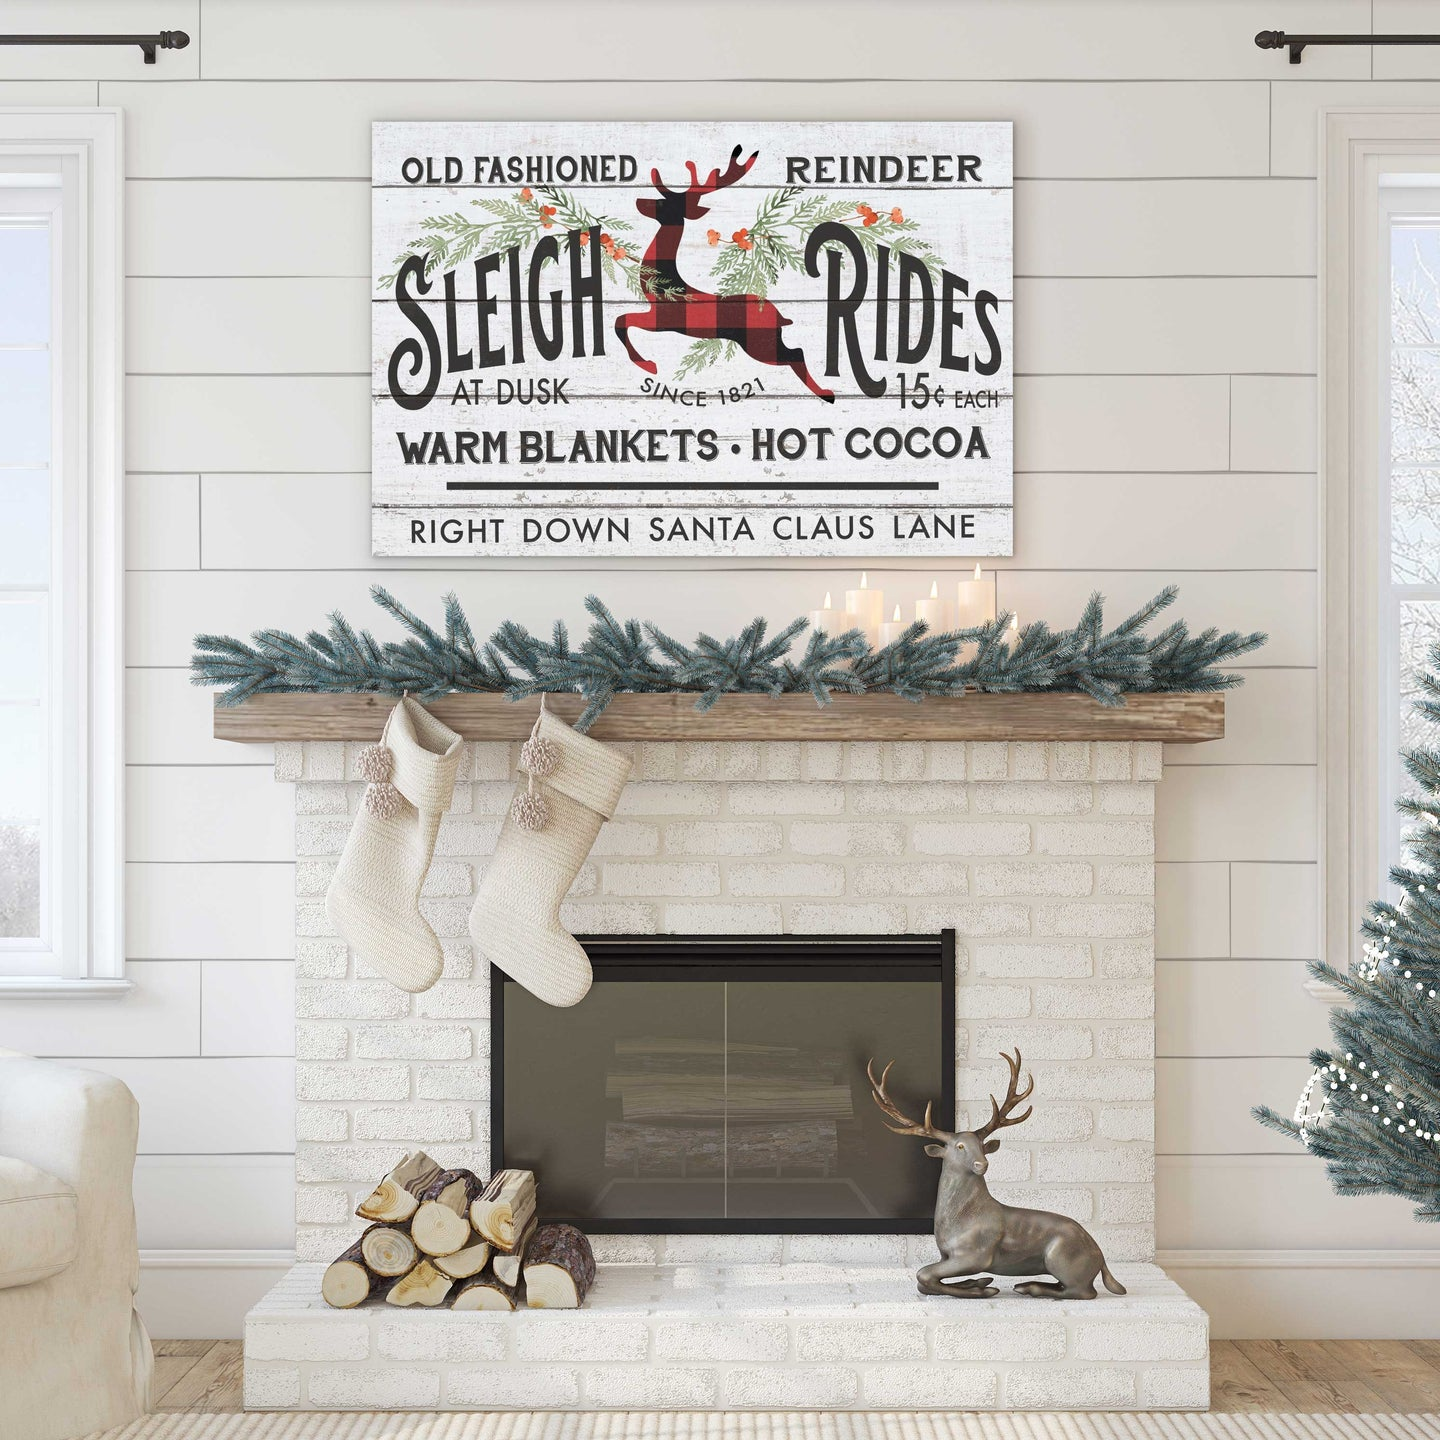 34x23 Old Fashioned Sleigh Ride Sign